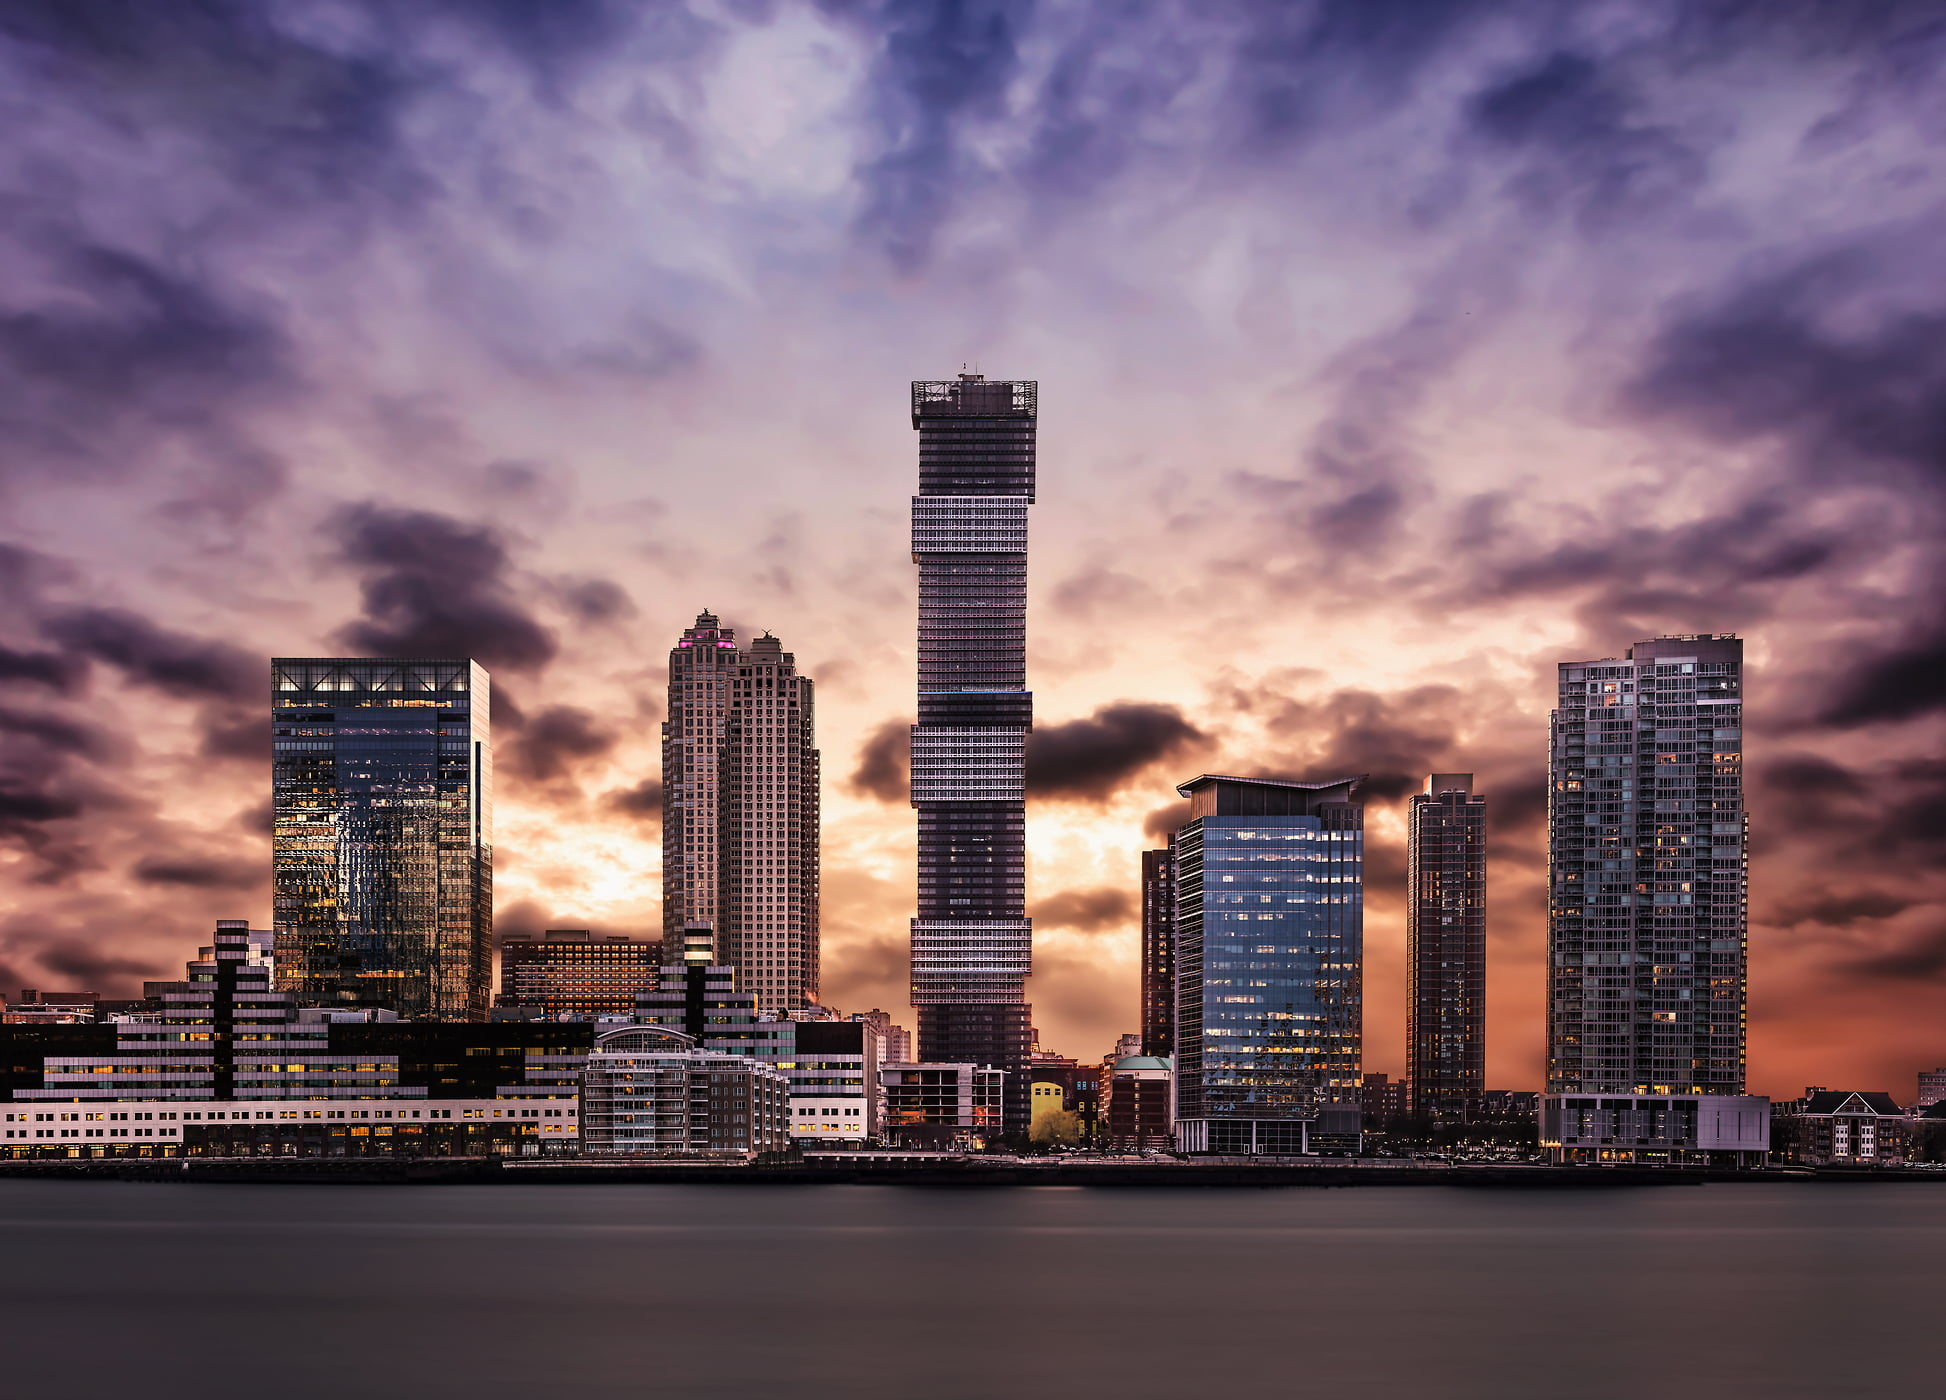 382 megapixels! A very high definition cityscape VAST photo of the Jersey City skyscrapers including URL Harborside 1 at sunset in New Jersey ; created by Dan Piech